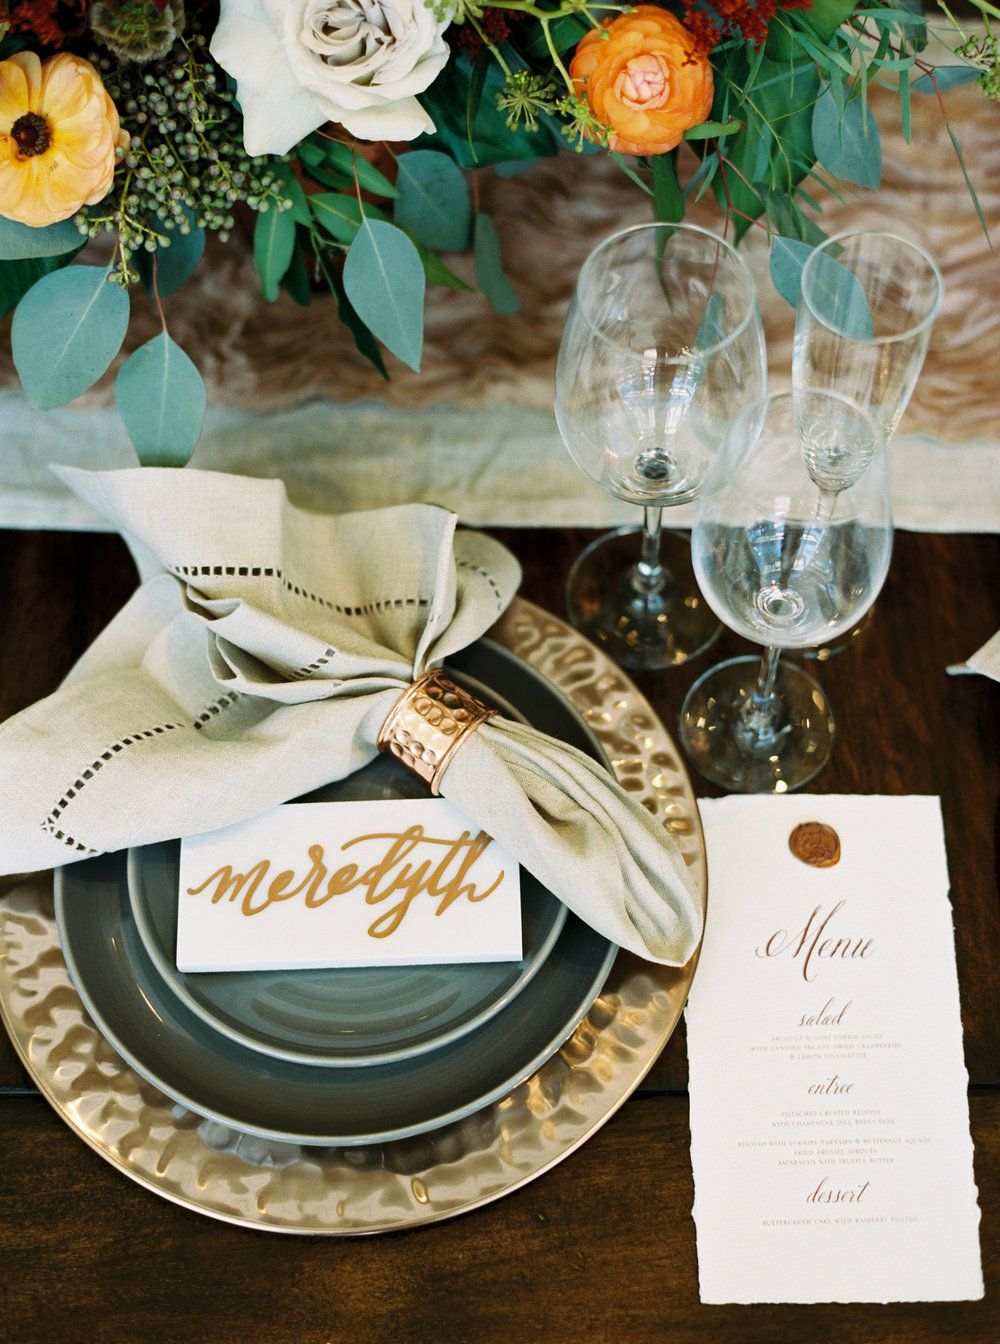 wedding registry tips_pottery barn_deckled edge menu with wax seal.jpg